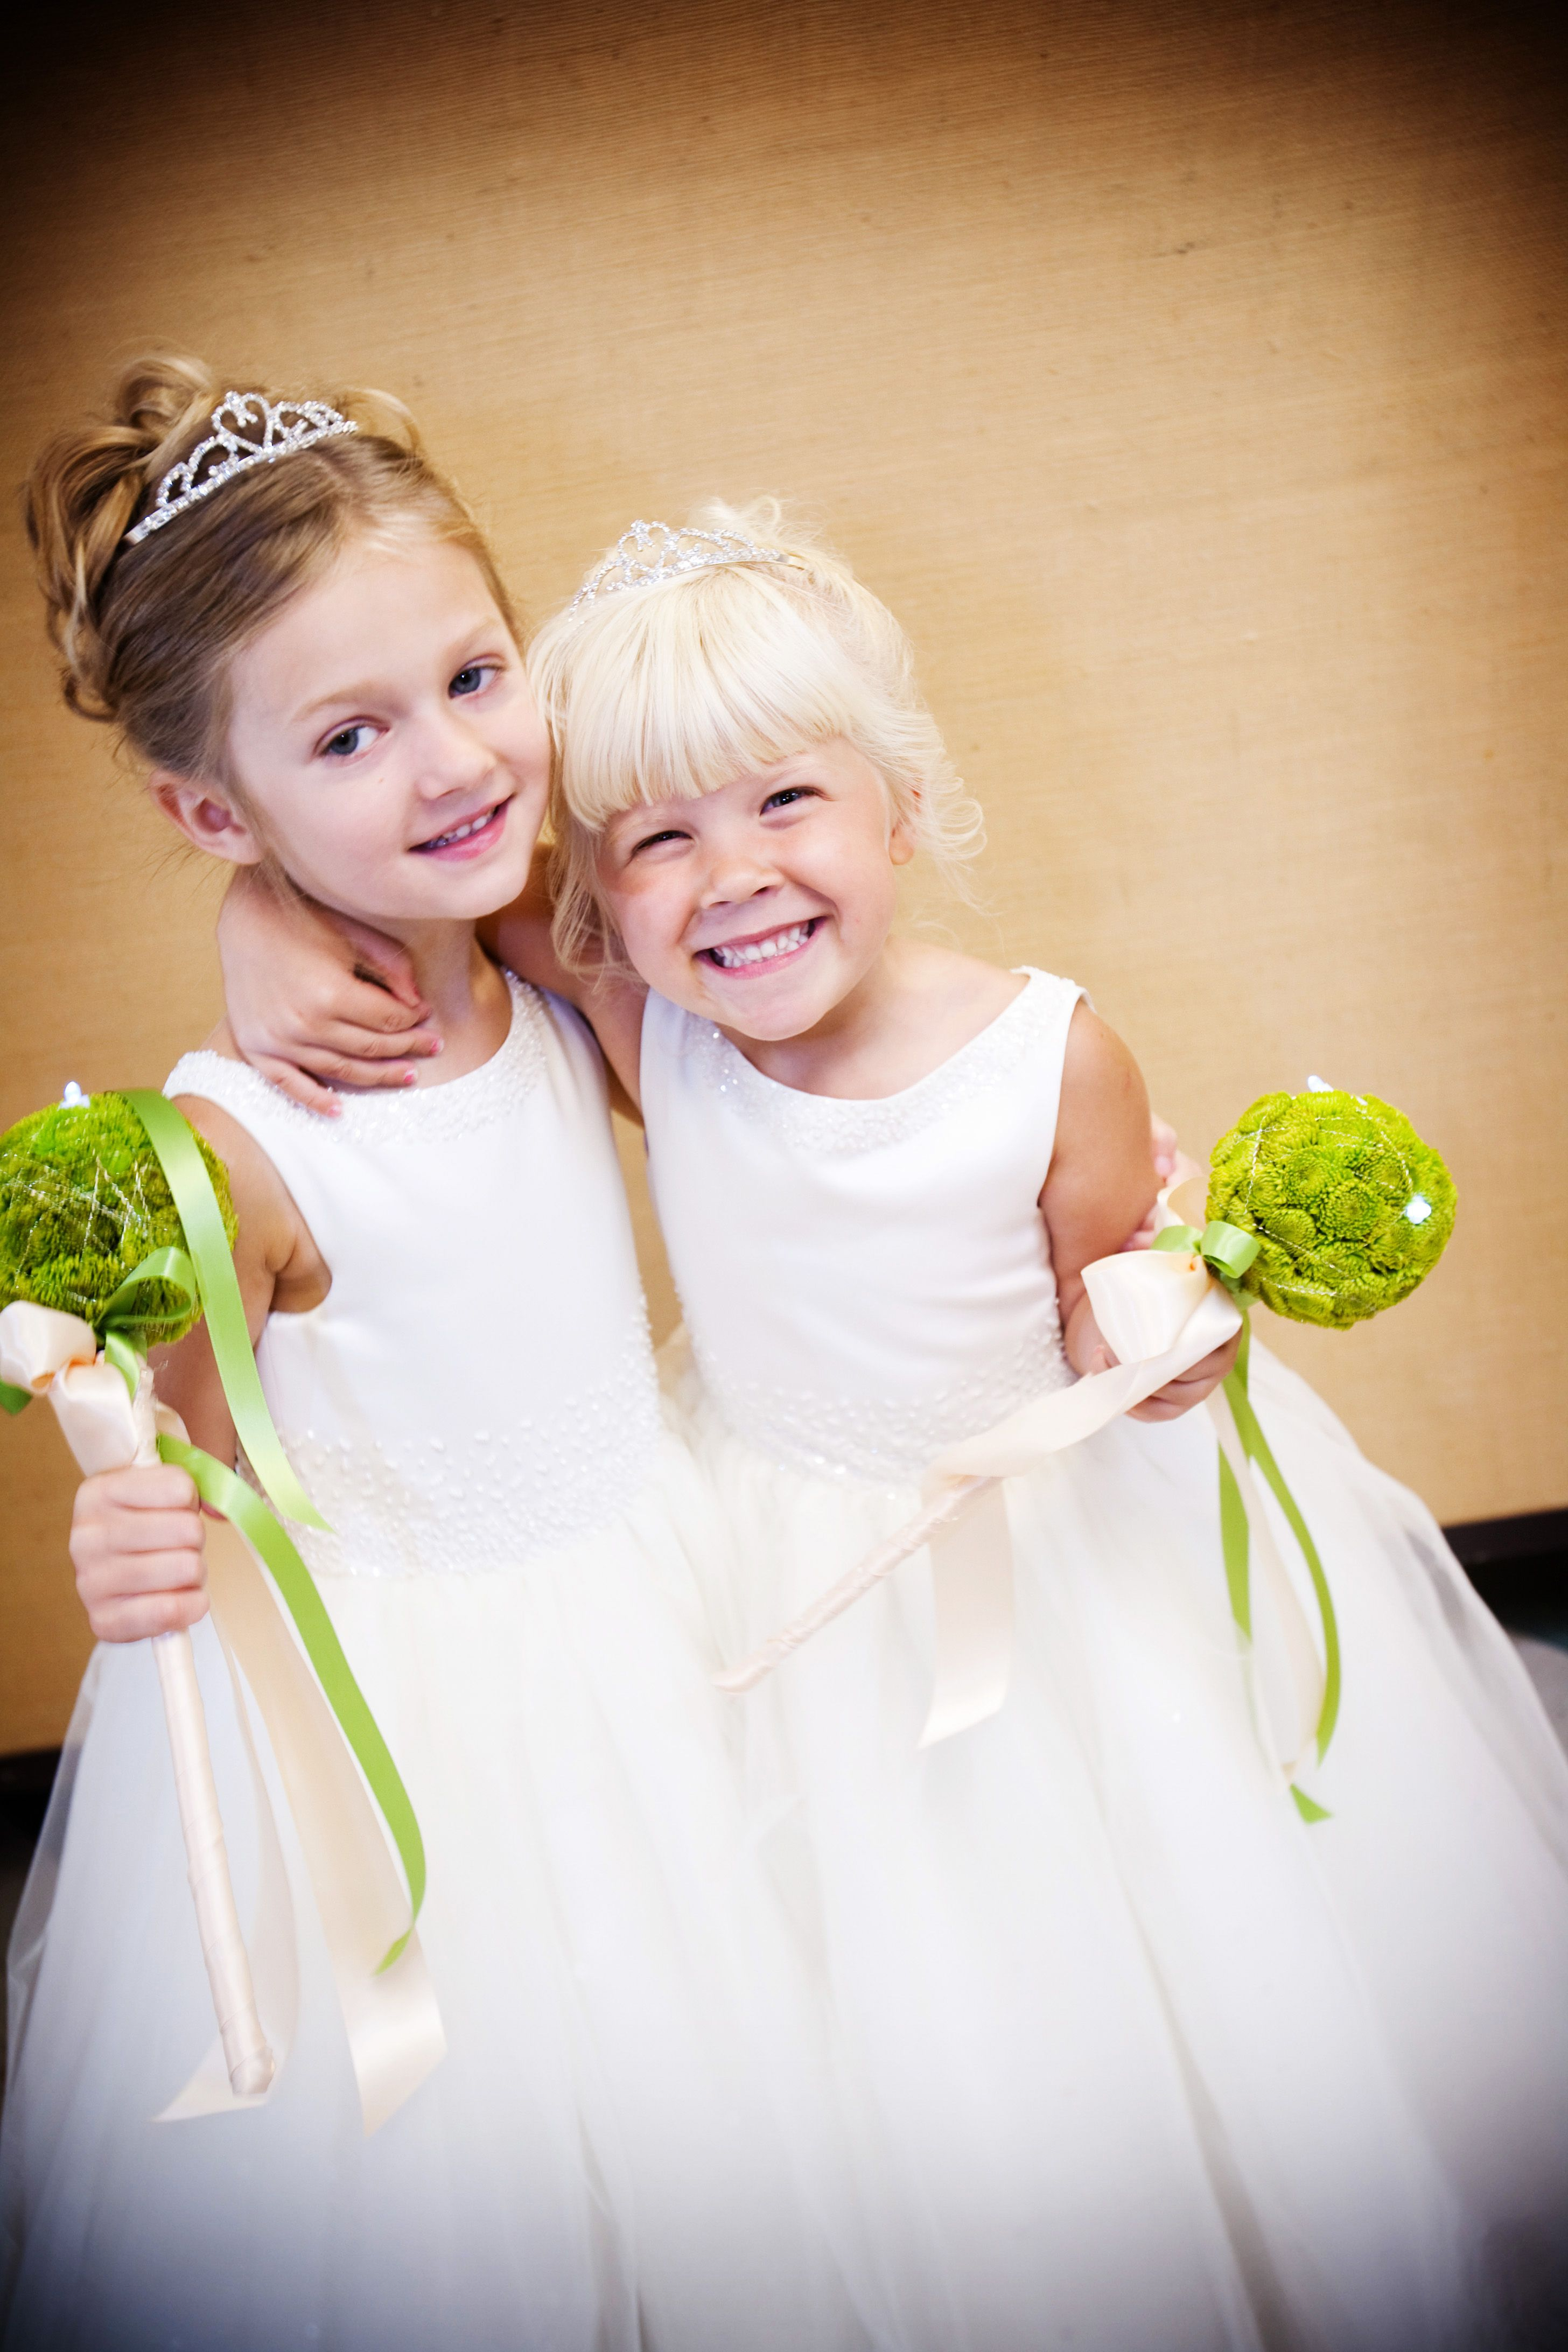 These flower girls are adorable the best part is their cute flower